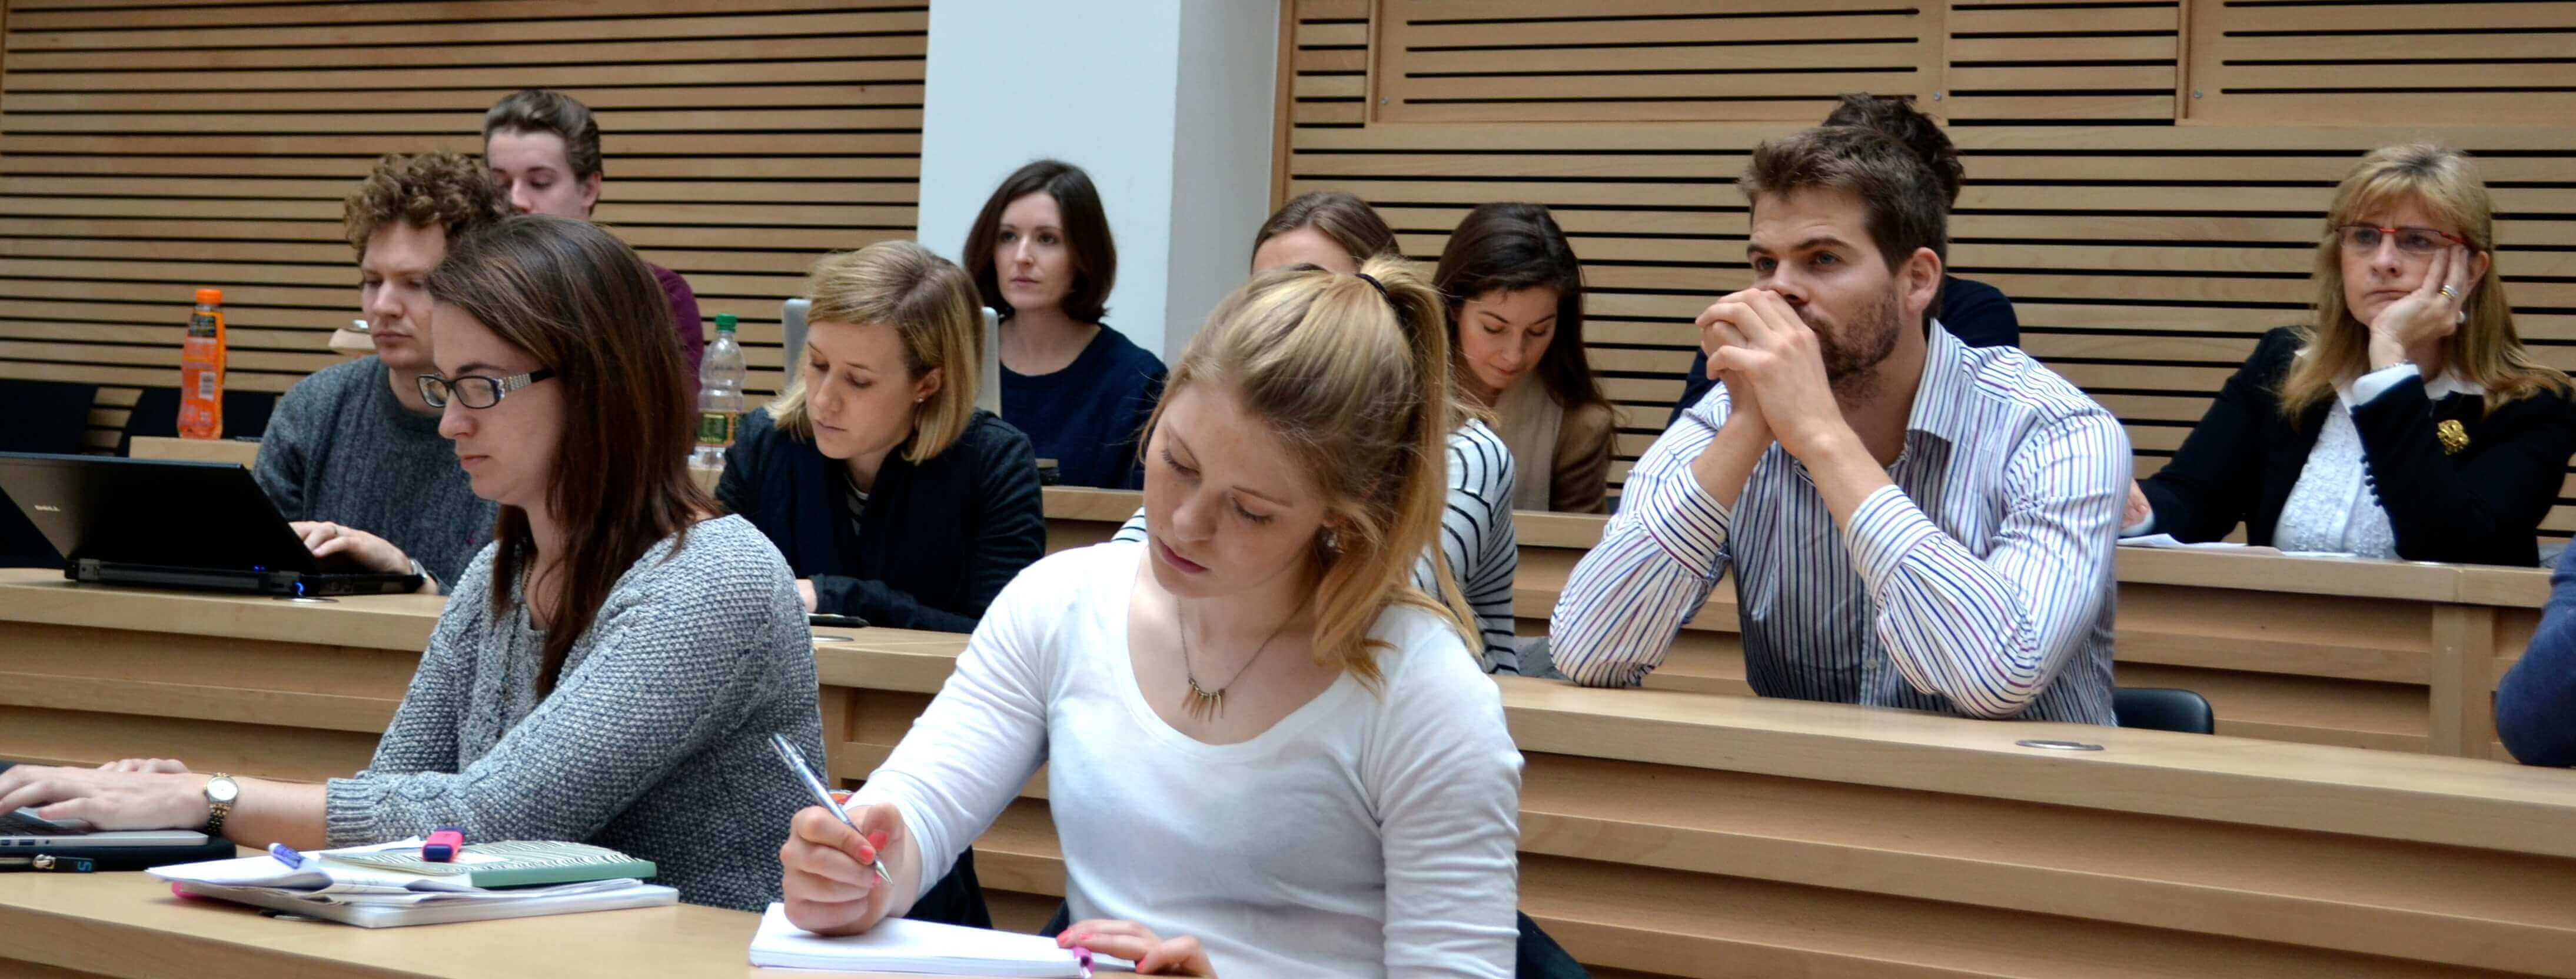 OxHRH Workshop for Human Rights for Oxford Graduate Research Students